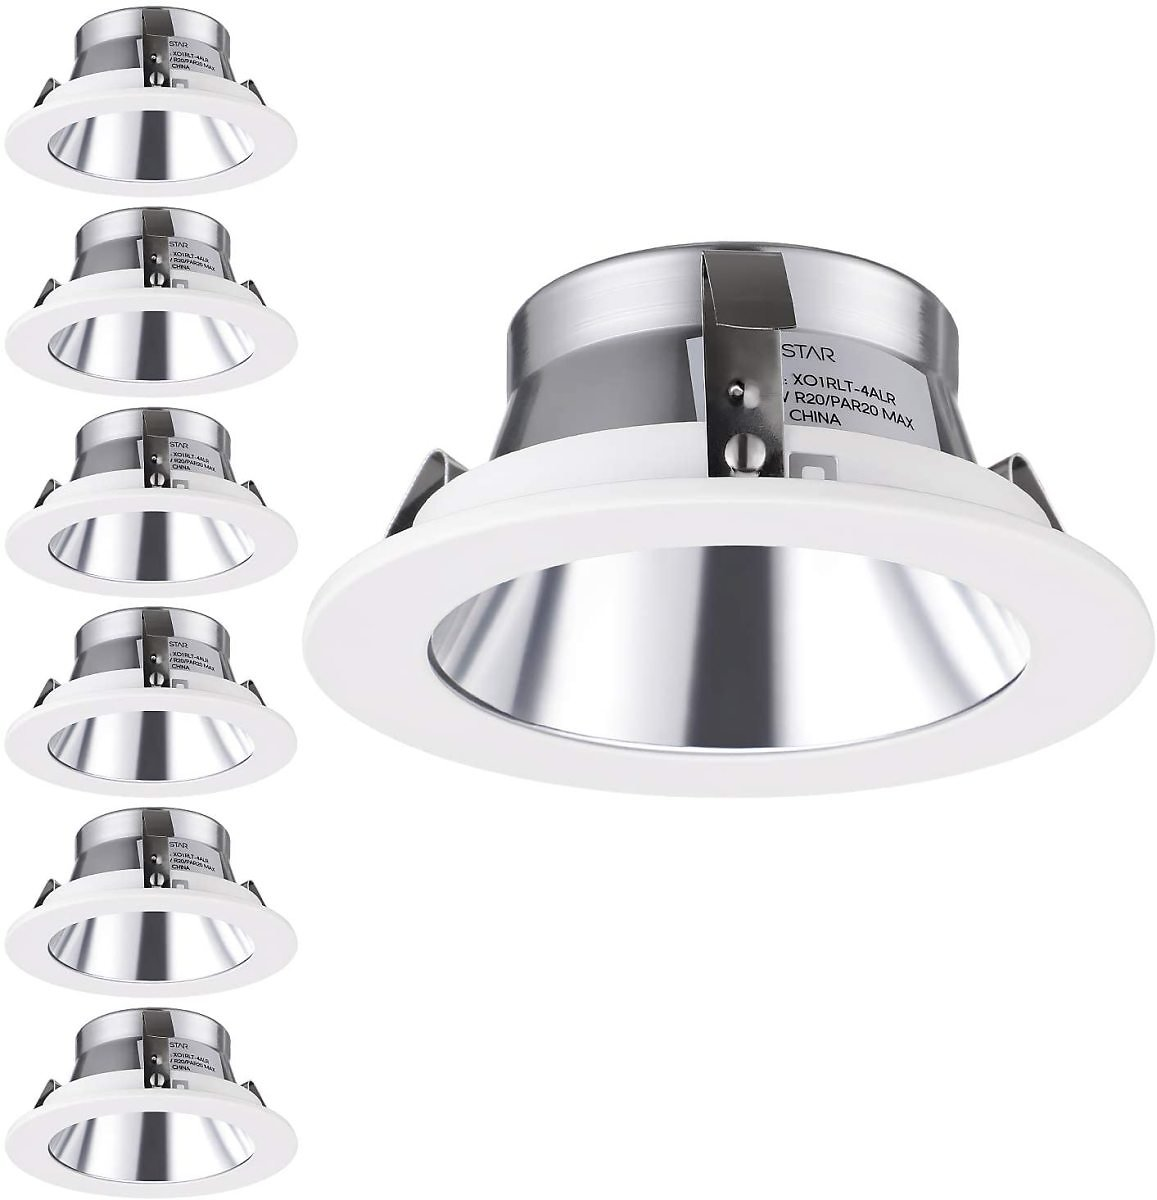 TORCHSTAR 4 Inch Light Trim with Aluminum Reflector White Metal Step Baffle, for 4 Inch Recessed Can, Fit Halo/Juno Remodel Recessed Housing, Line Voltage Available, Pack of 6